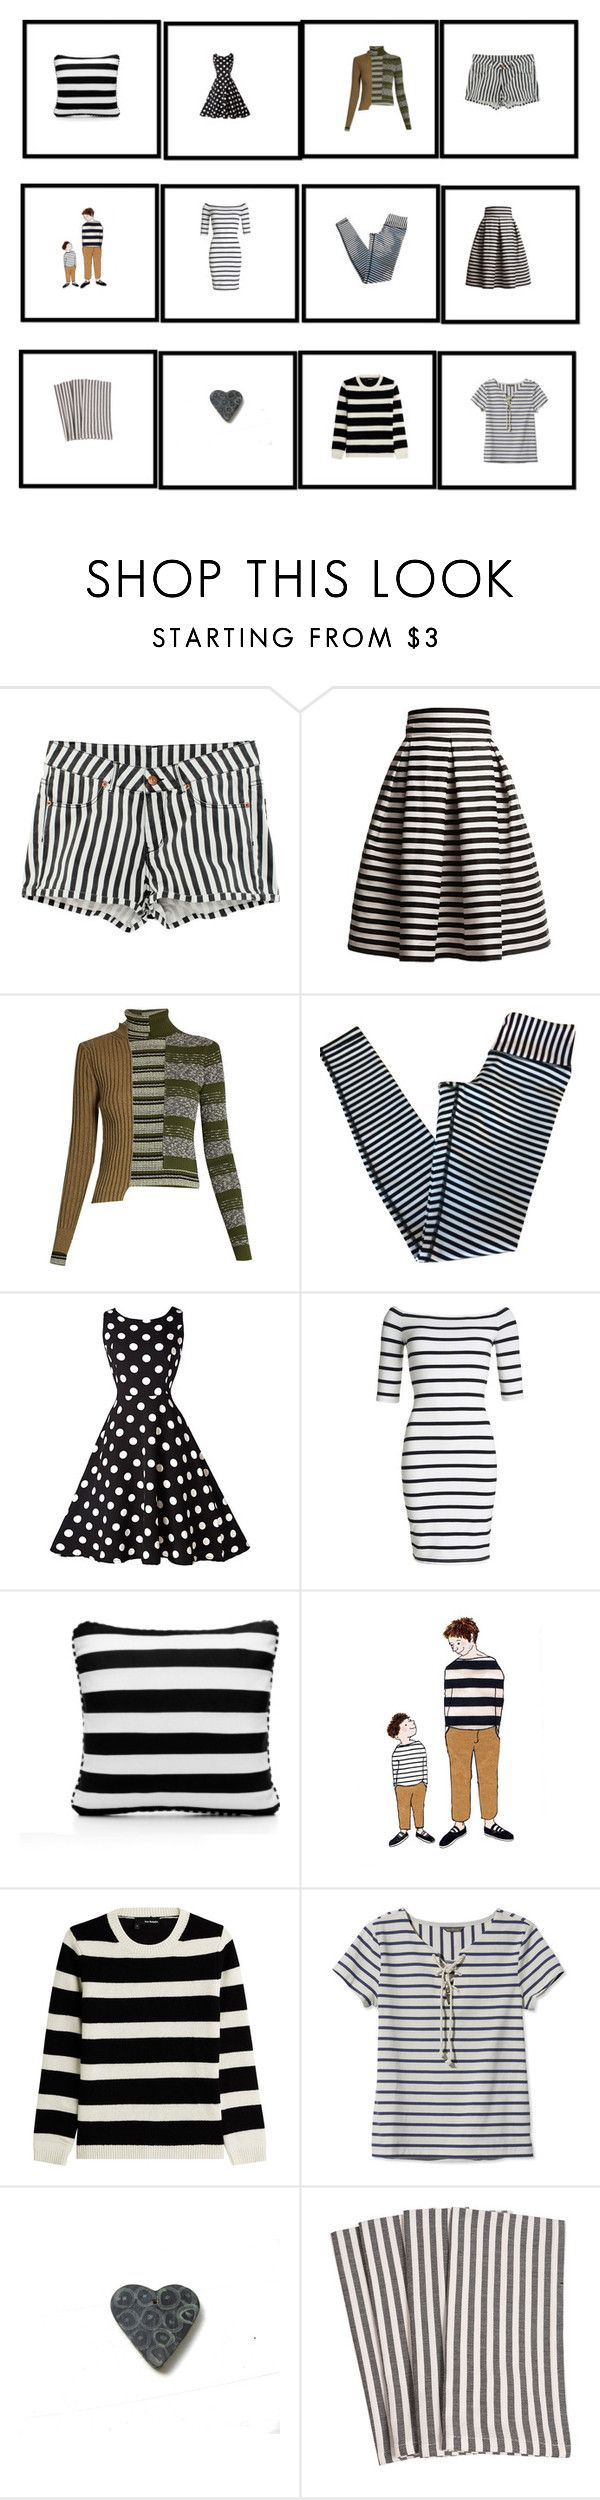 """""""Black and white"""" by talma-vardi ❤ liked on Polyvore featuring H&M, Rumour London, Maison Margiela, lululemon, Superdry, SCENERY, The Kooples and L.L.Bean"""